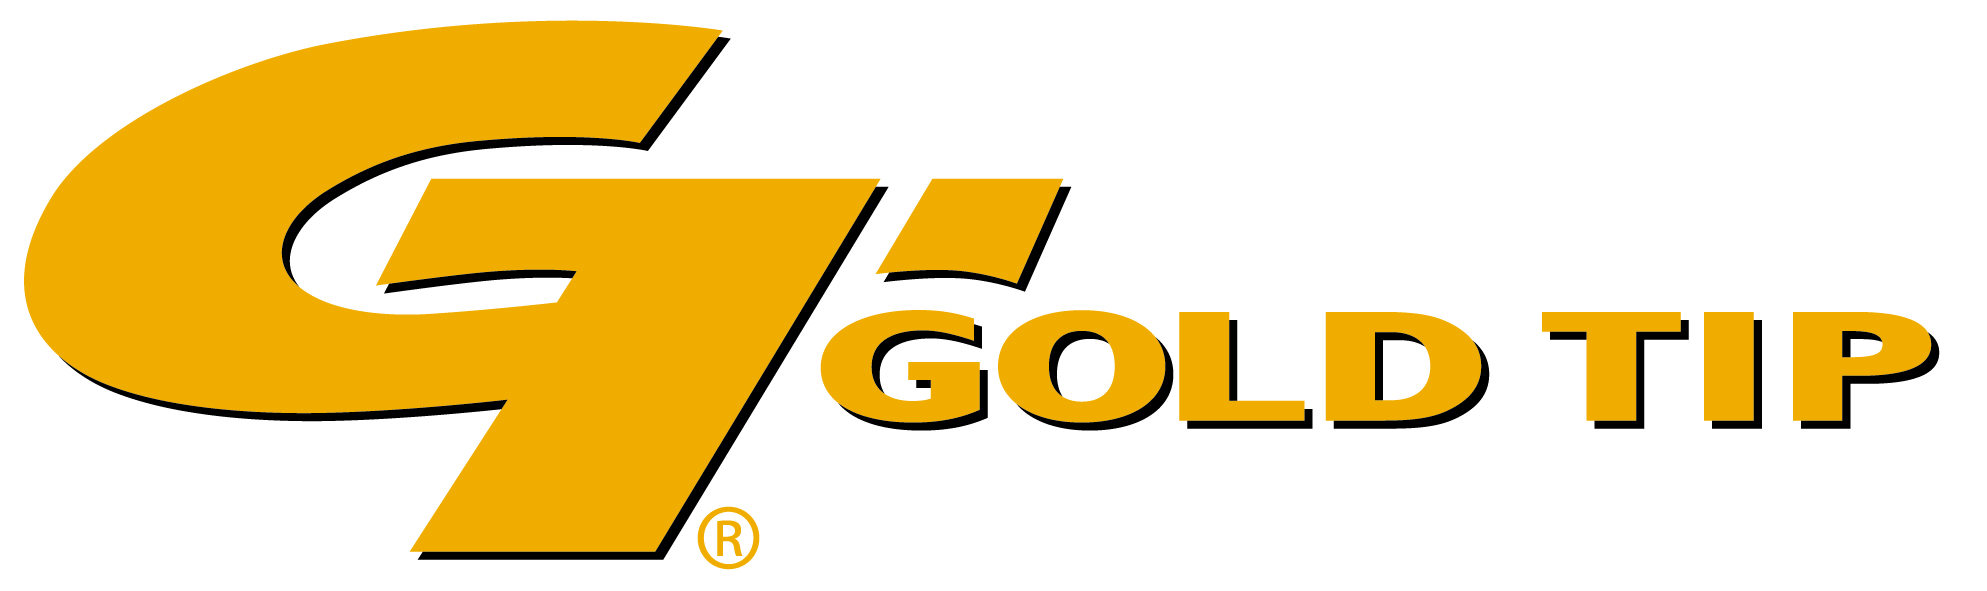 Gold-Tip-4-Color-Logo